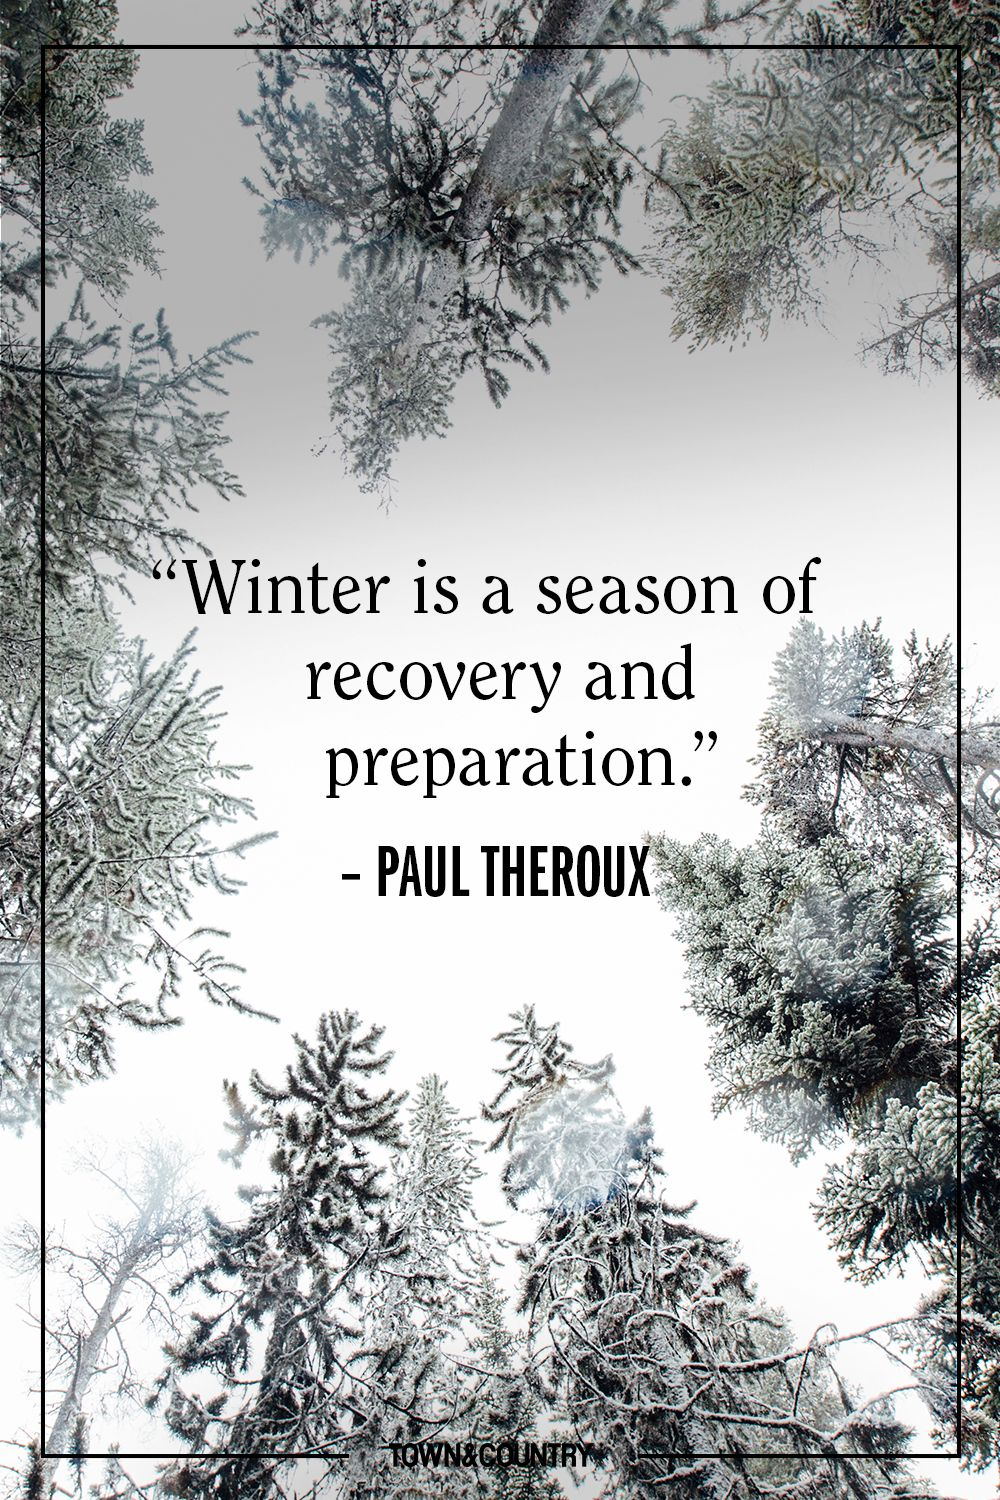 22 Best Winter Quotes - Cute Sayings About Snow & The Winter ...